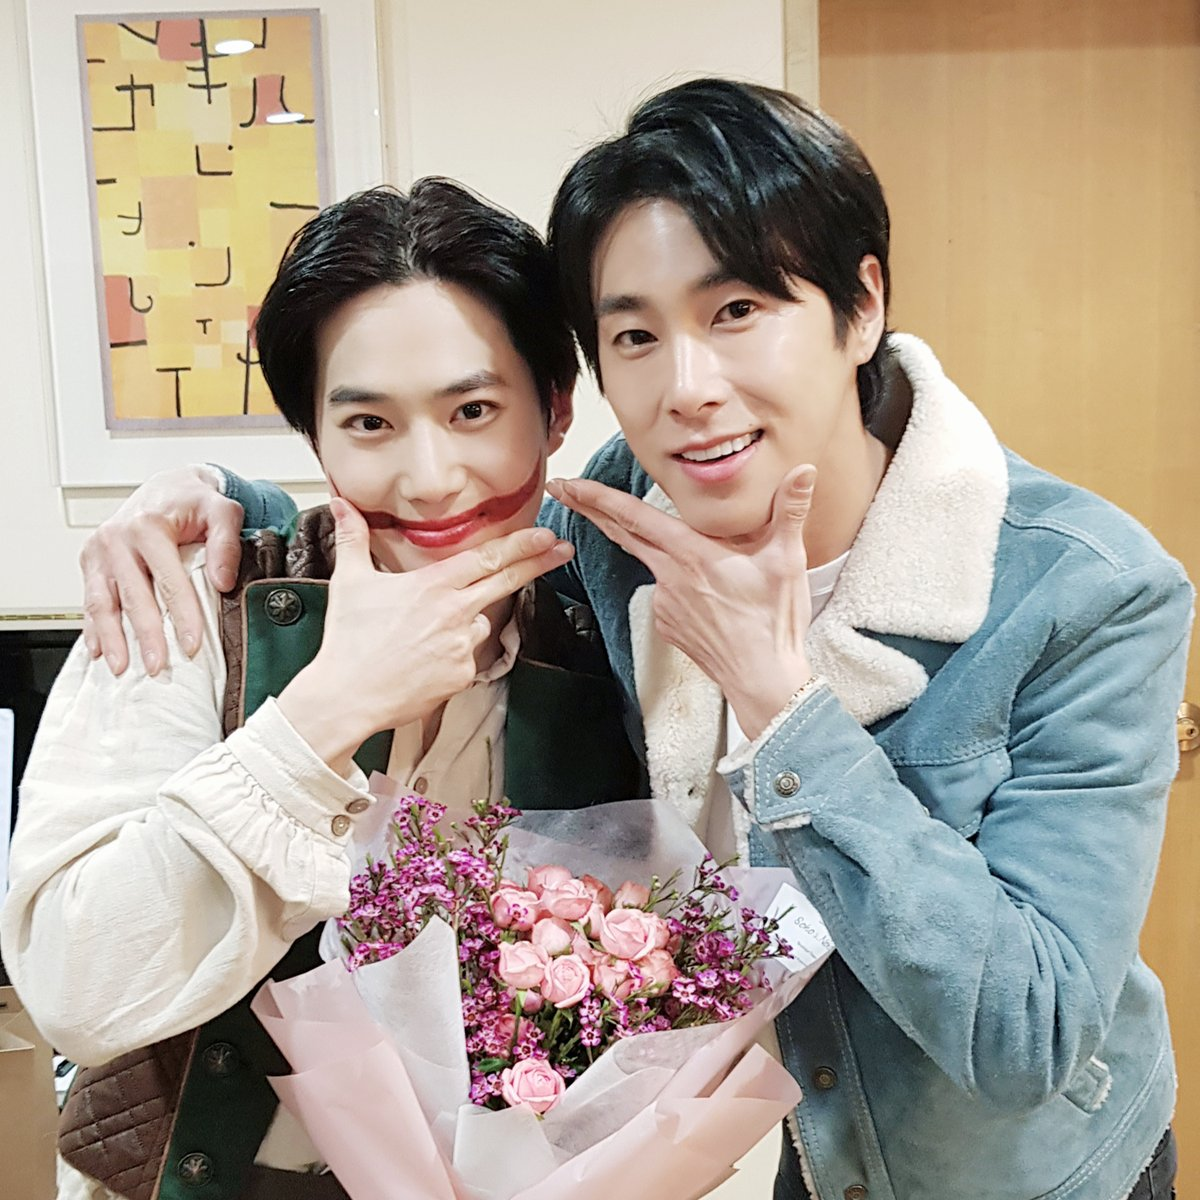 [📸 #U_Know & #SUHO]  Capturing the moment of U-Know & SUHO at the musical <#TheManWhoLaughs>!😎 Those of you who haven't seen it yet, go meet the enthusiastic '#Myeonwynplaine' at the Seoul Arts Center Opera House!🎪  #SMTOWN #수호 #면윈플렌 #엑소 #EXO #웃는남자 #유노윤호 #TVXQ!